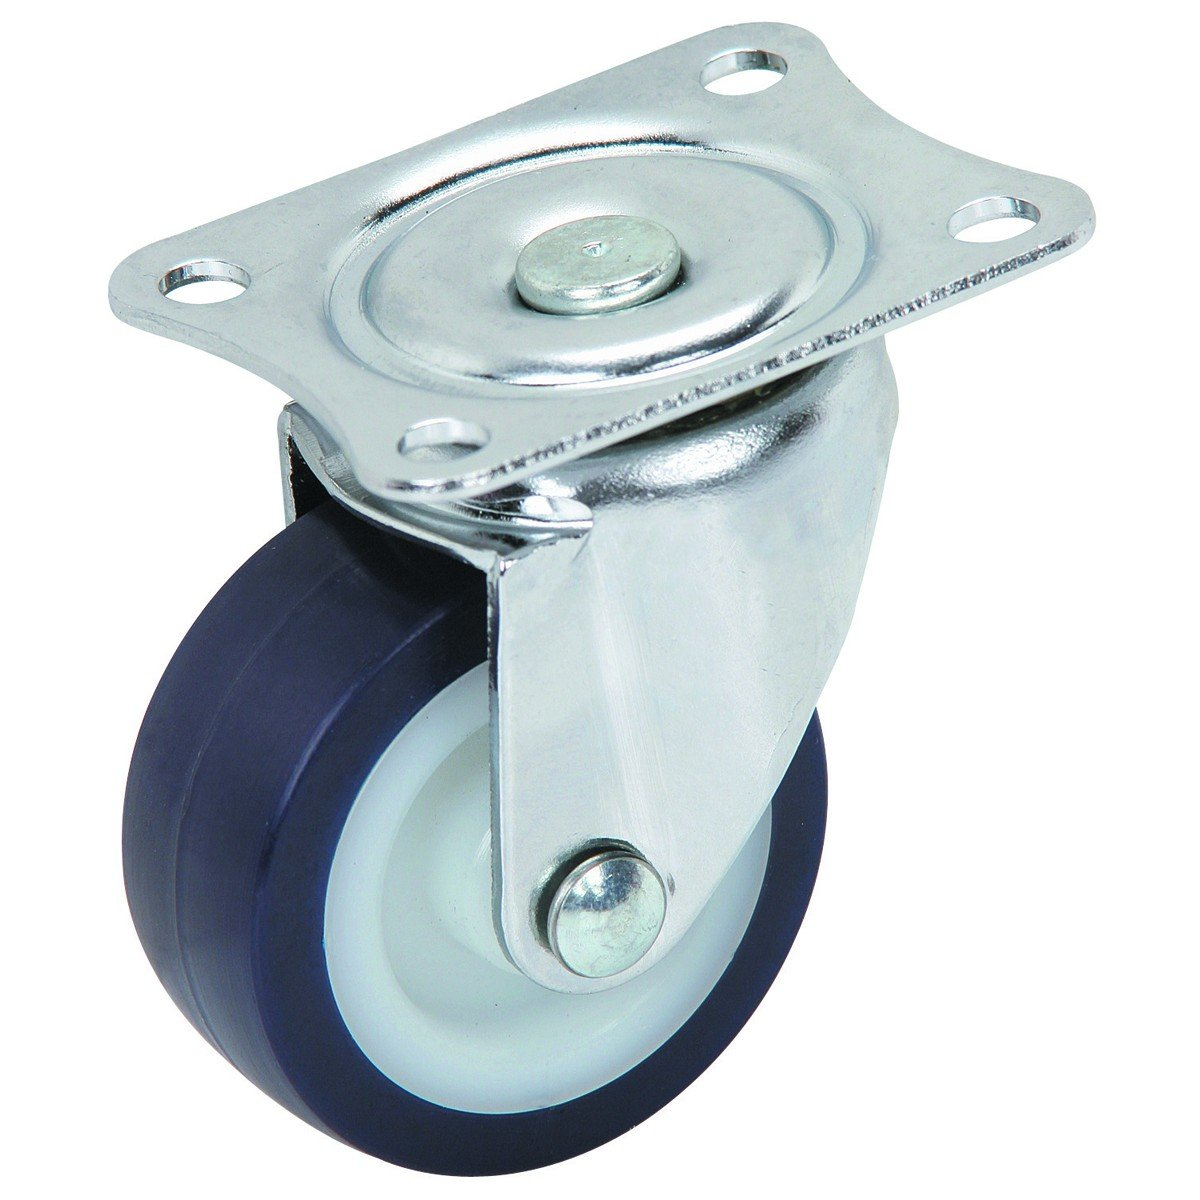 2 in. Polyurethane Light Duty Swivel Caster